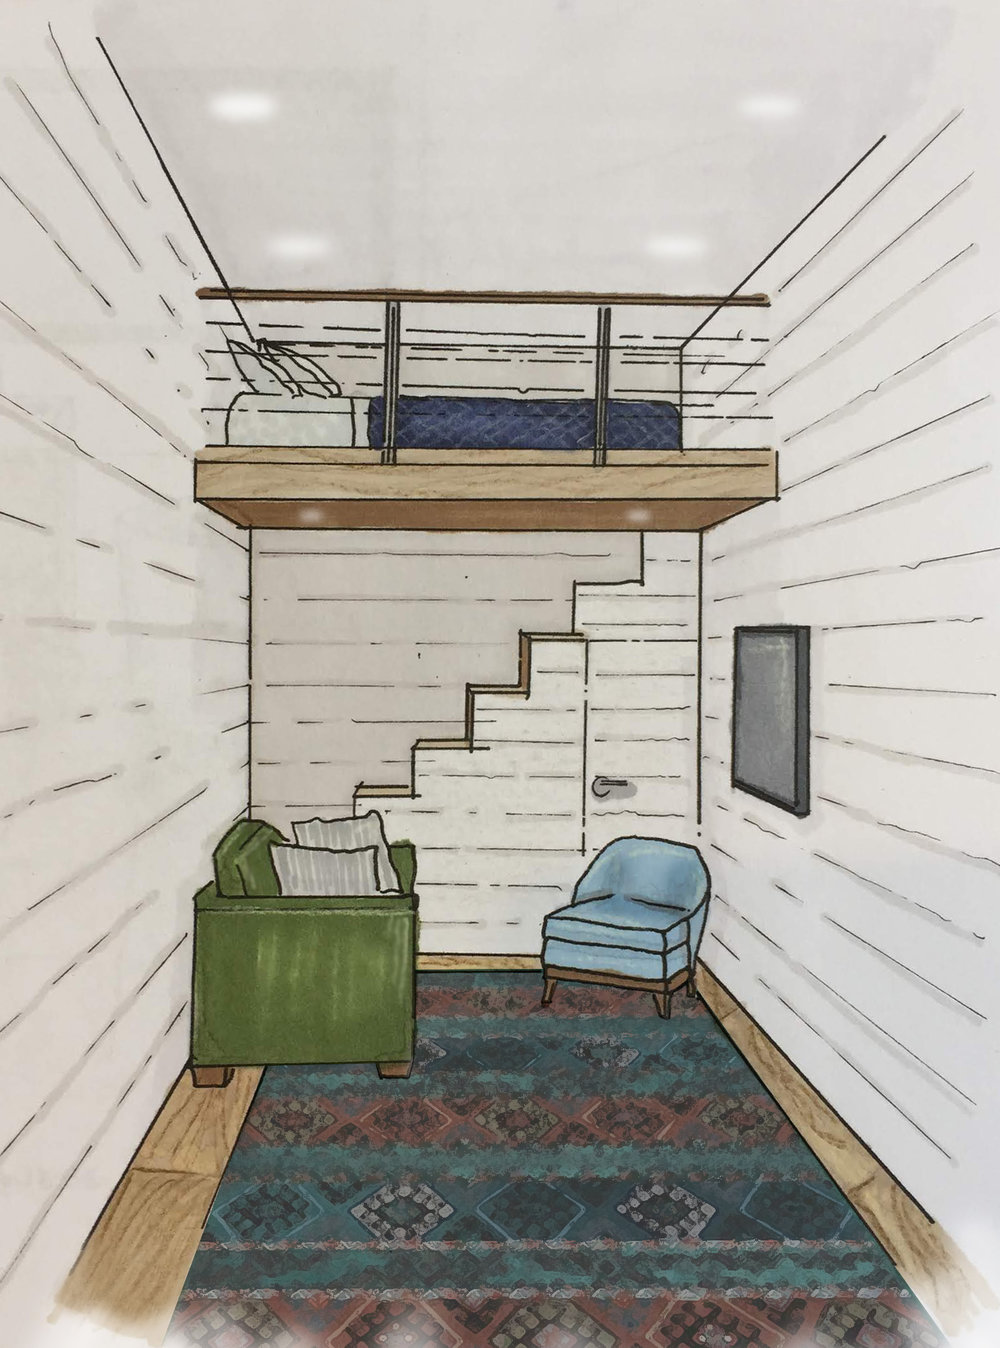 #2 - Let's talk storage stairs. They don't always have to be positioned in the middle of the house. Stairs inset into the loft, or better yet, going up the back are a great idea and a space saver.